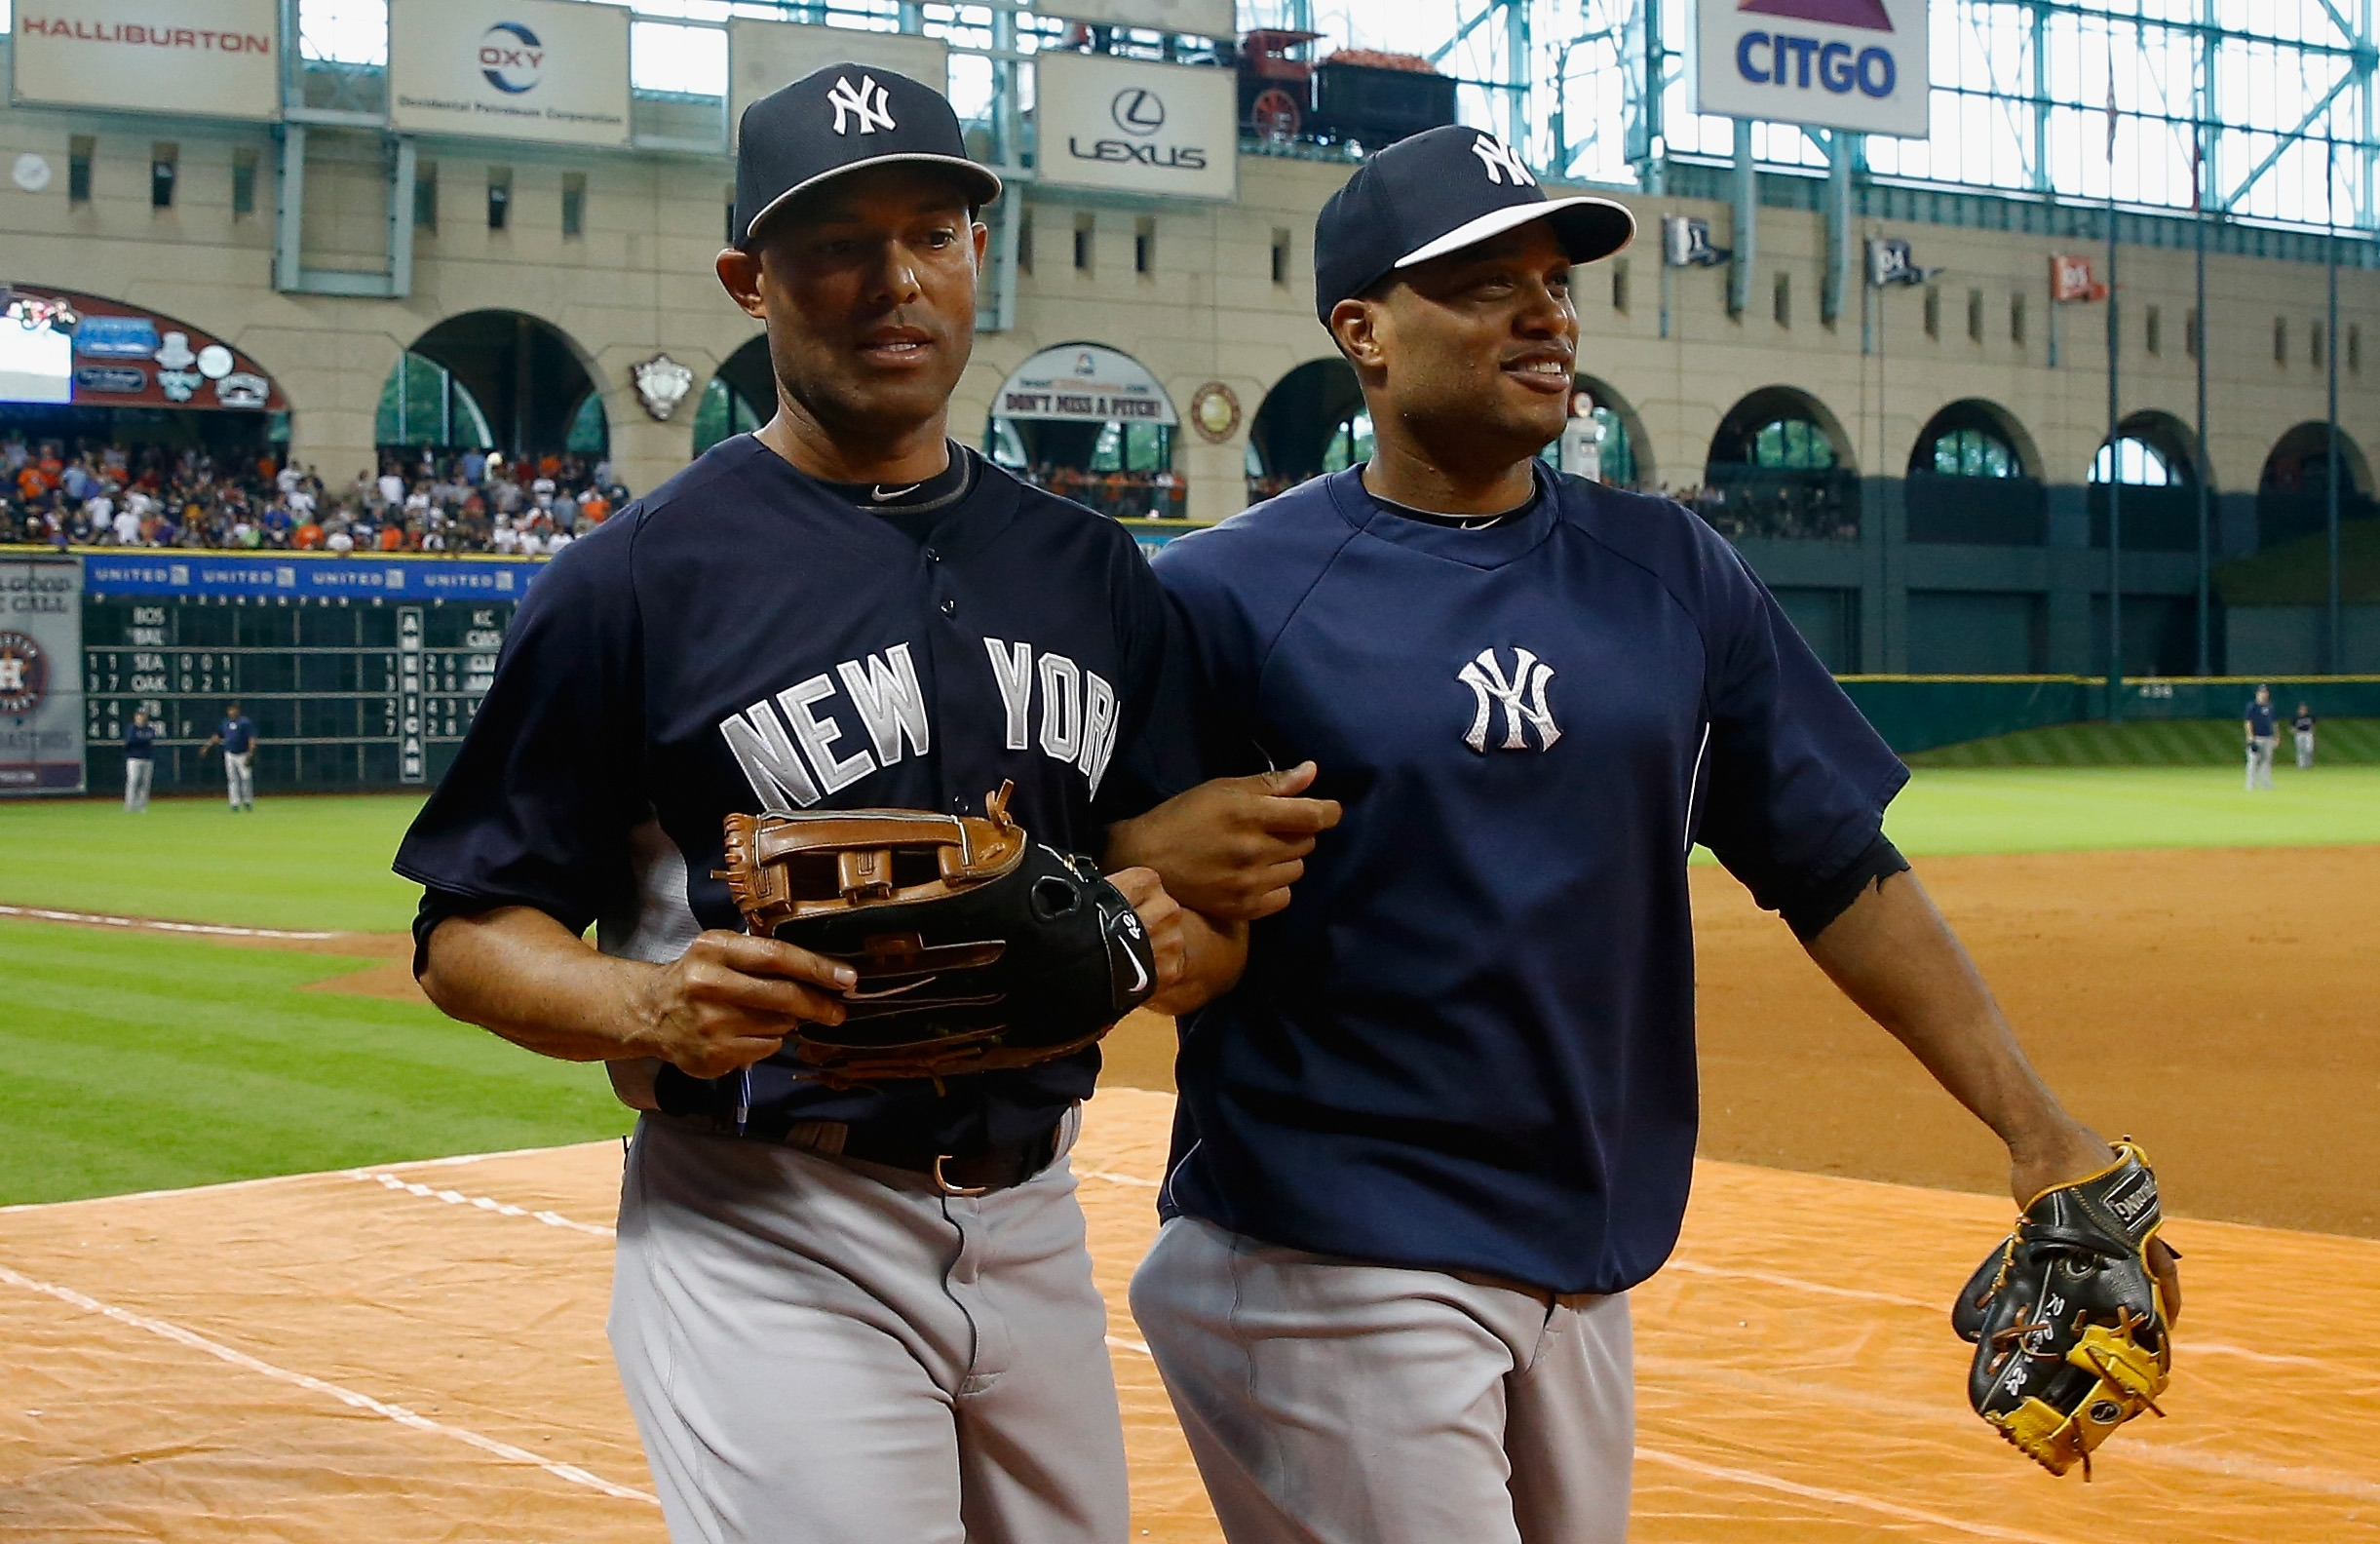 Mariano Rivera, left, is leaving for sure but Robinson Cano, right, could follow him out the door in the Bronx as a high-priced free agent.